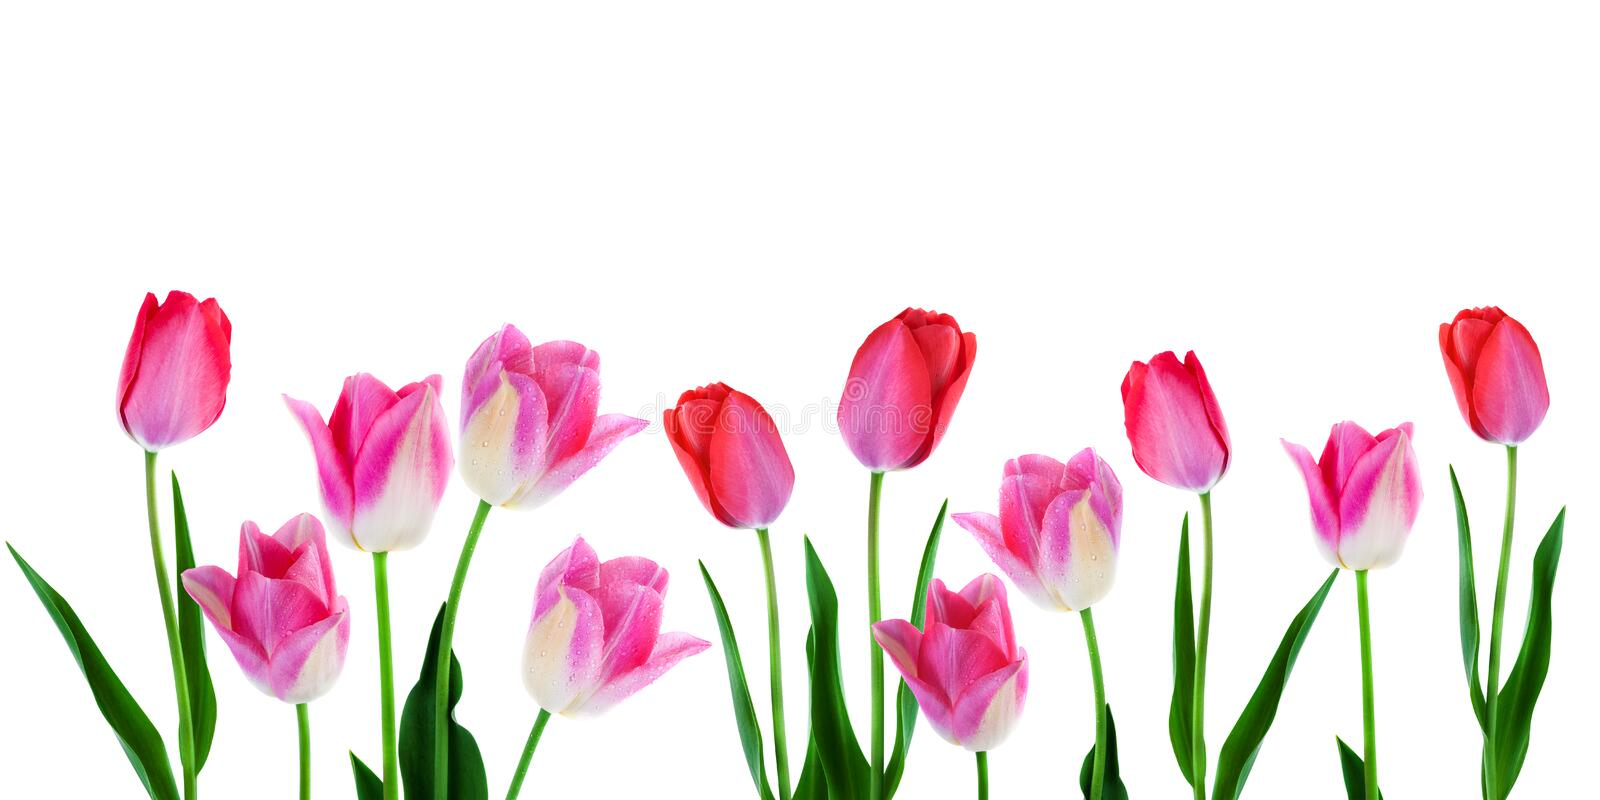 Spring Flowers Border - Banner Pink Tulips In Row On White Background With Copy Space stock image